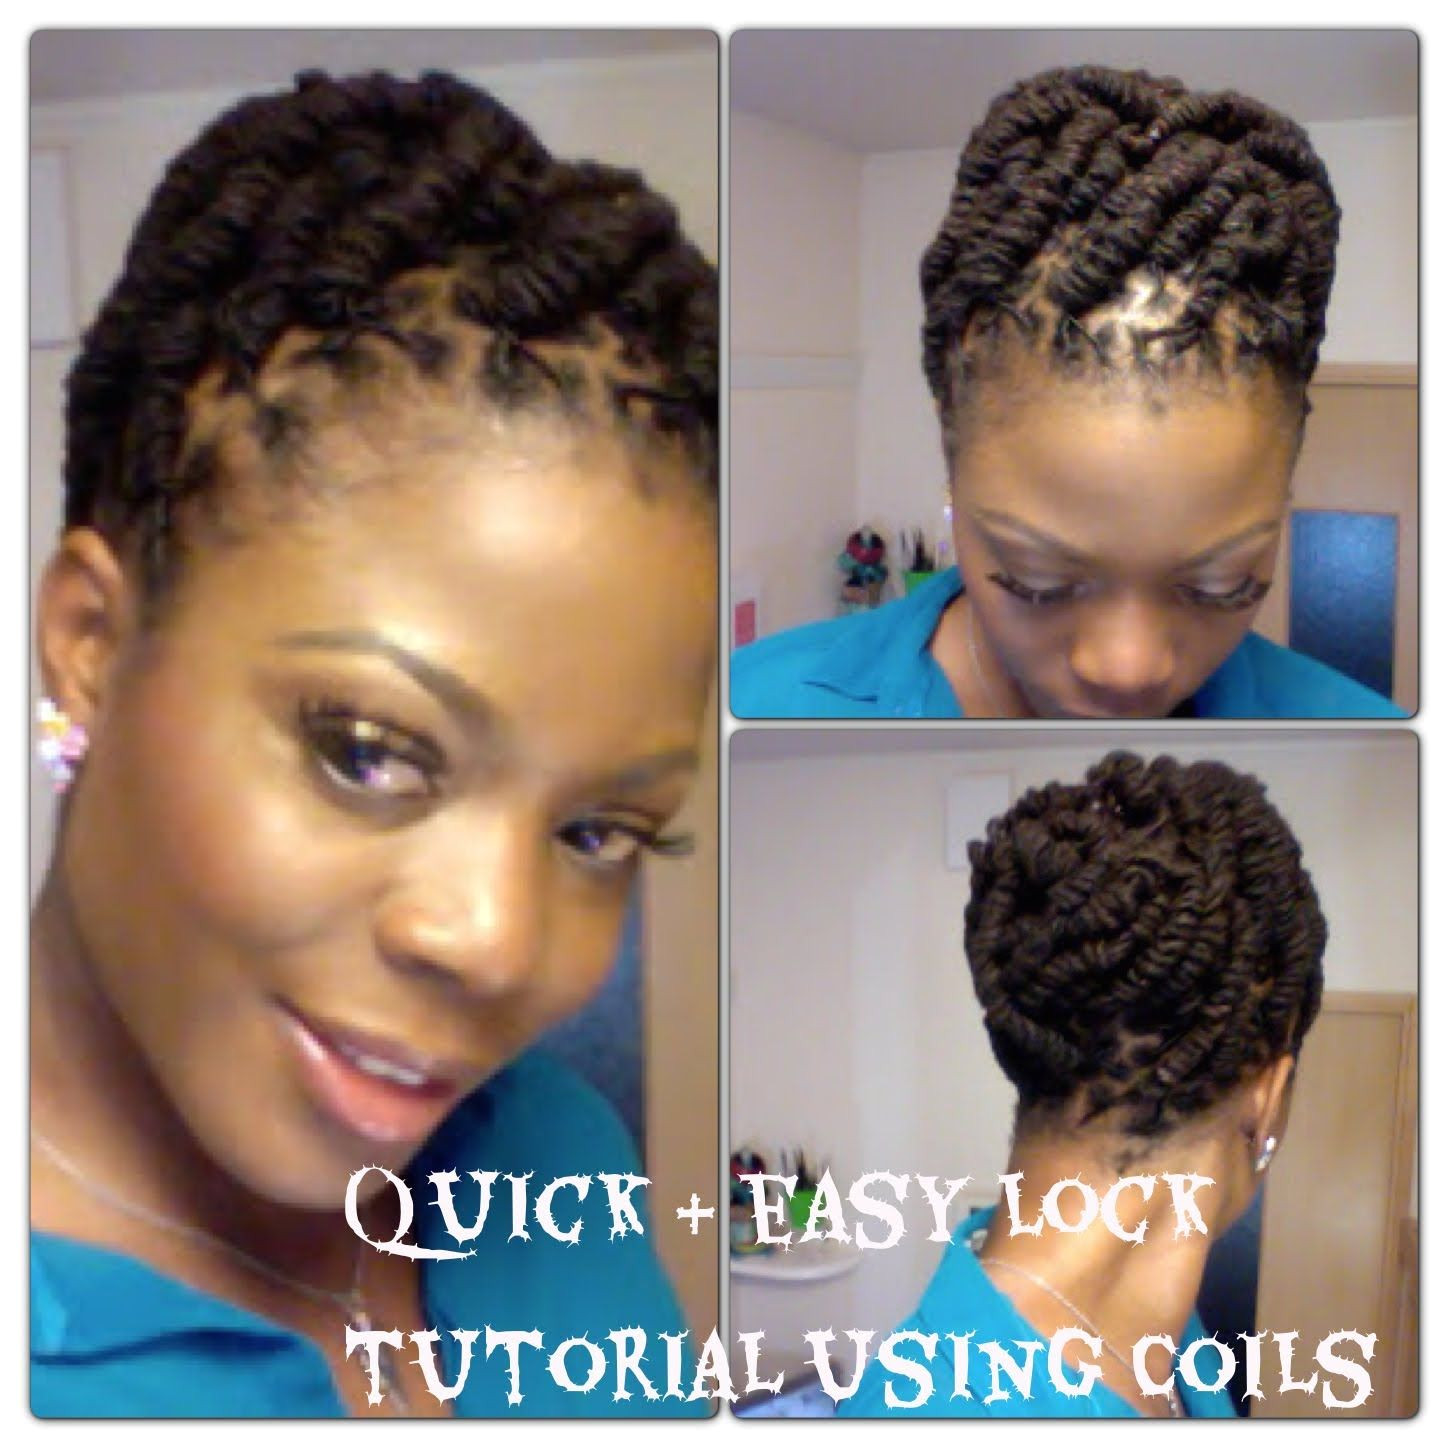 Hairstyles for Very Short Dreadlocks Simple and Quick Lock Hairstyle Using Coils